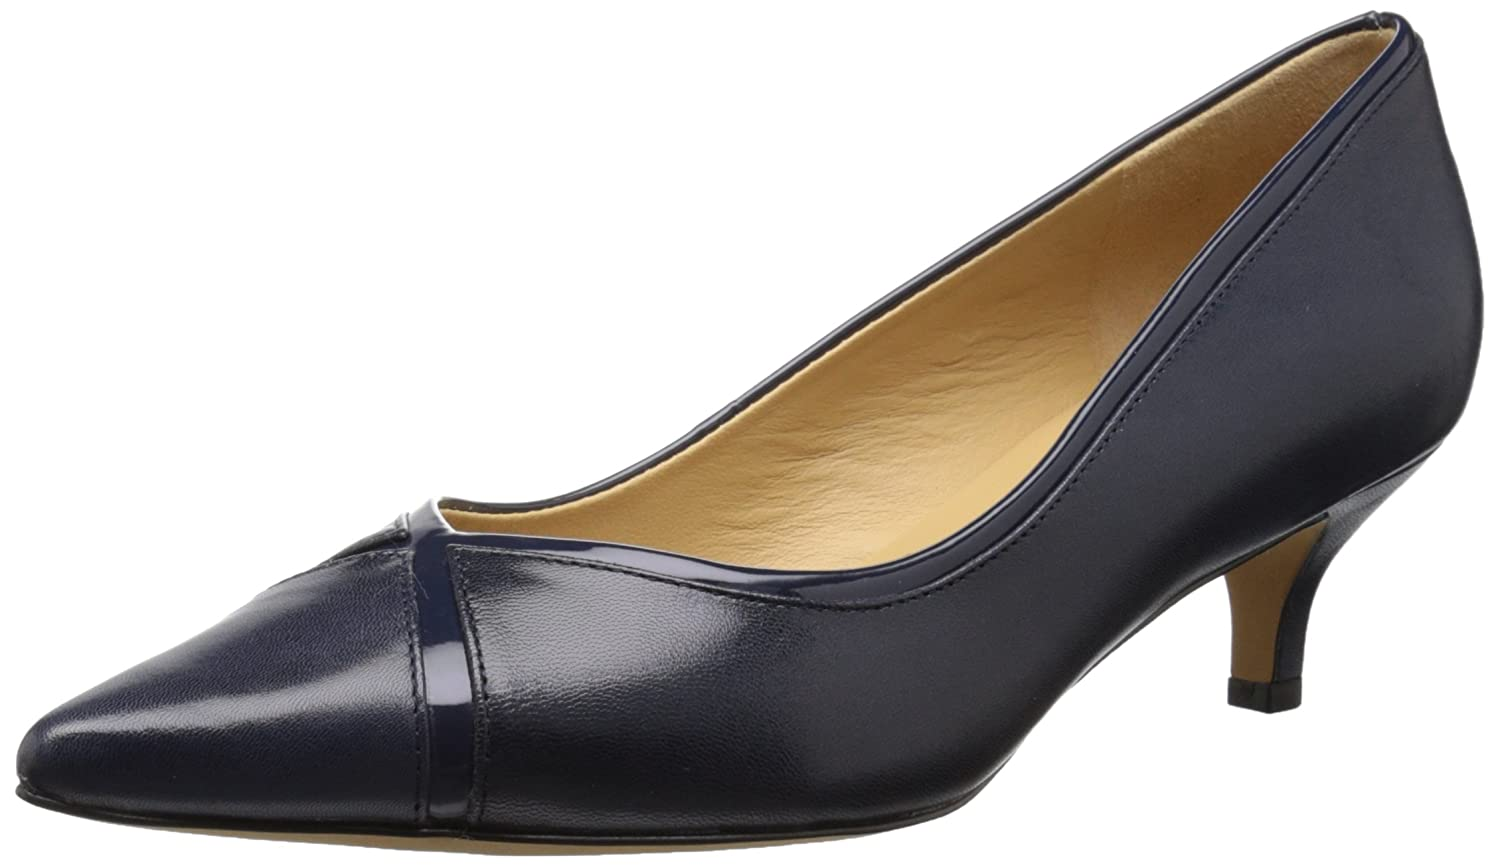 Trotters Women's Kelsey Dress Pump B011EZGUHG 6 B(M) US|Navy